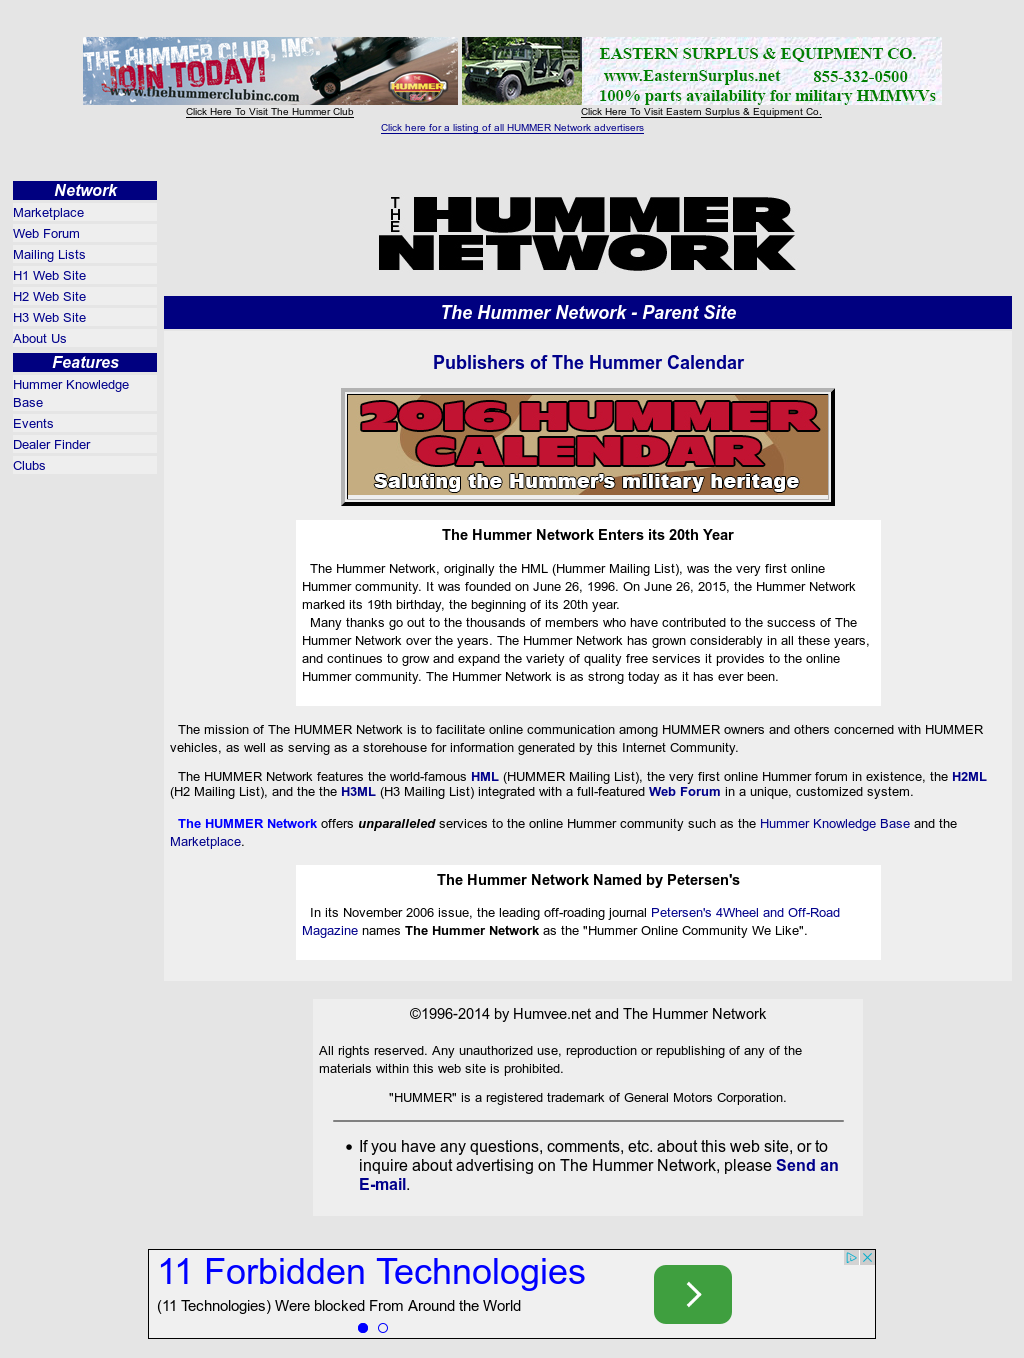 Humvee net And The Hummer Network Competitors, Revenue and